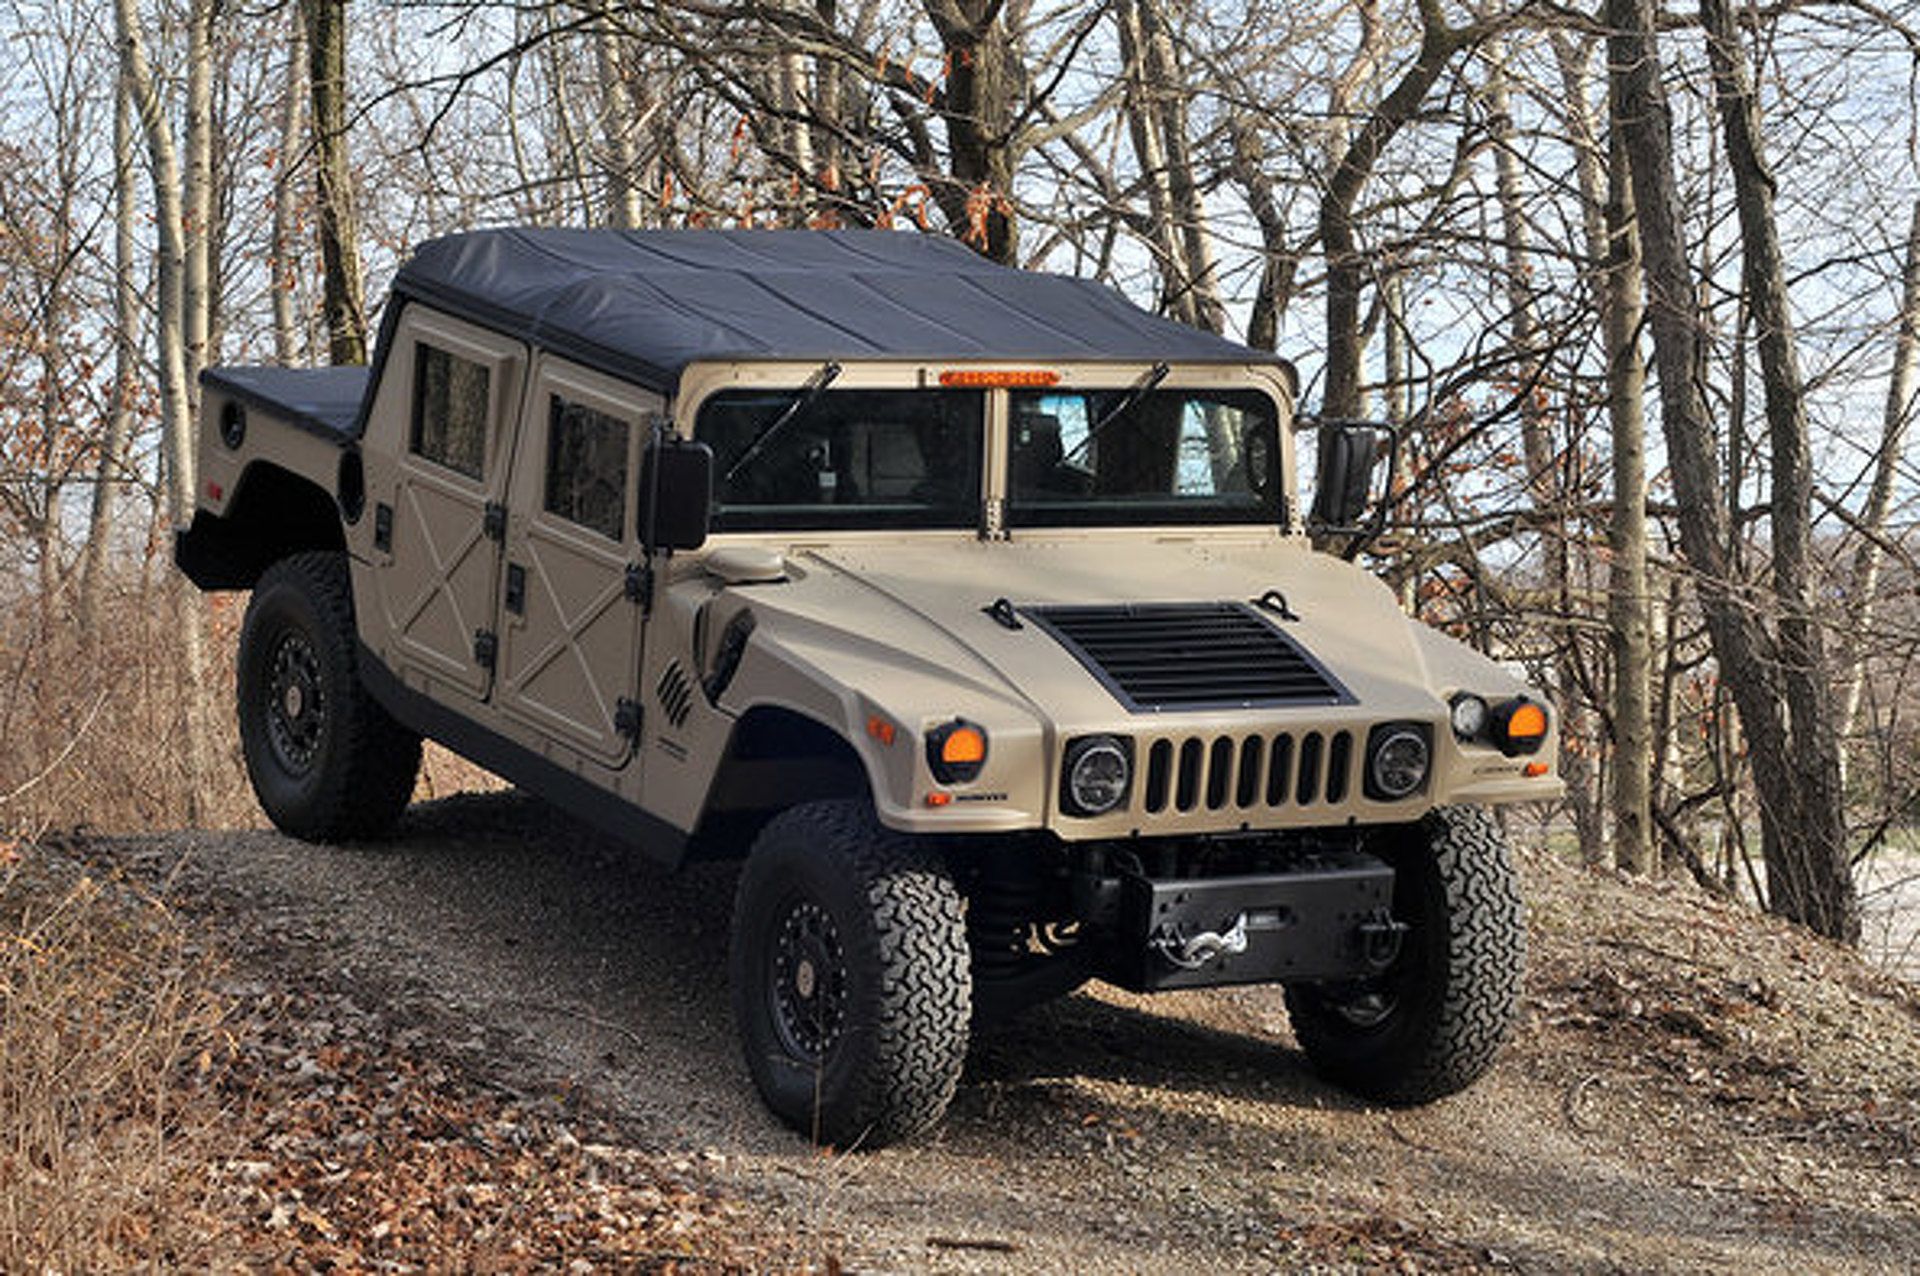 How Would You Power A Brand New Humvee Kit